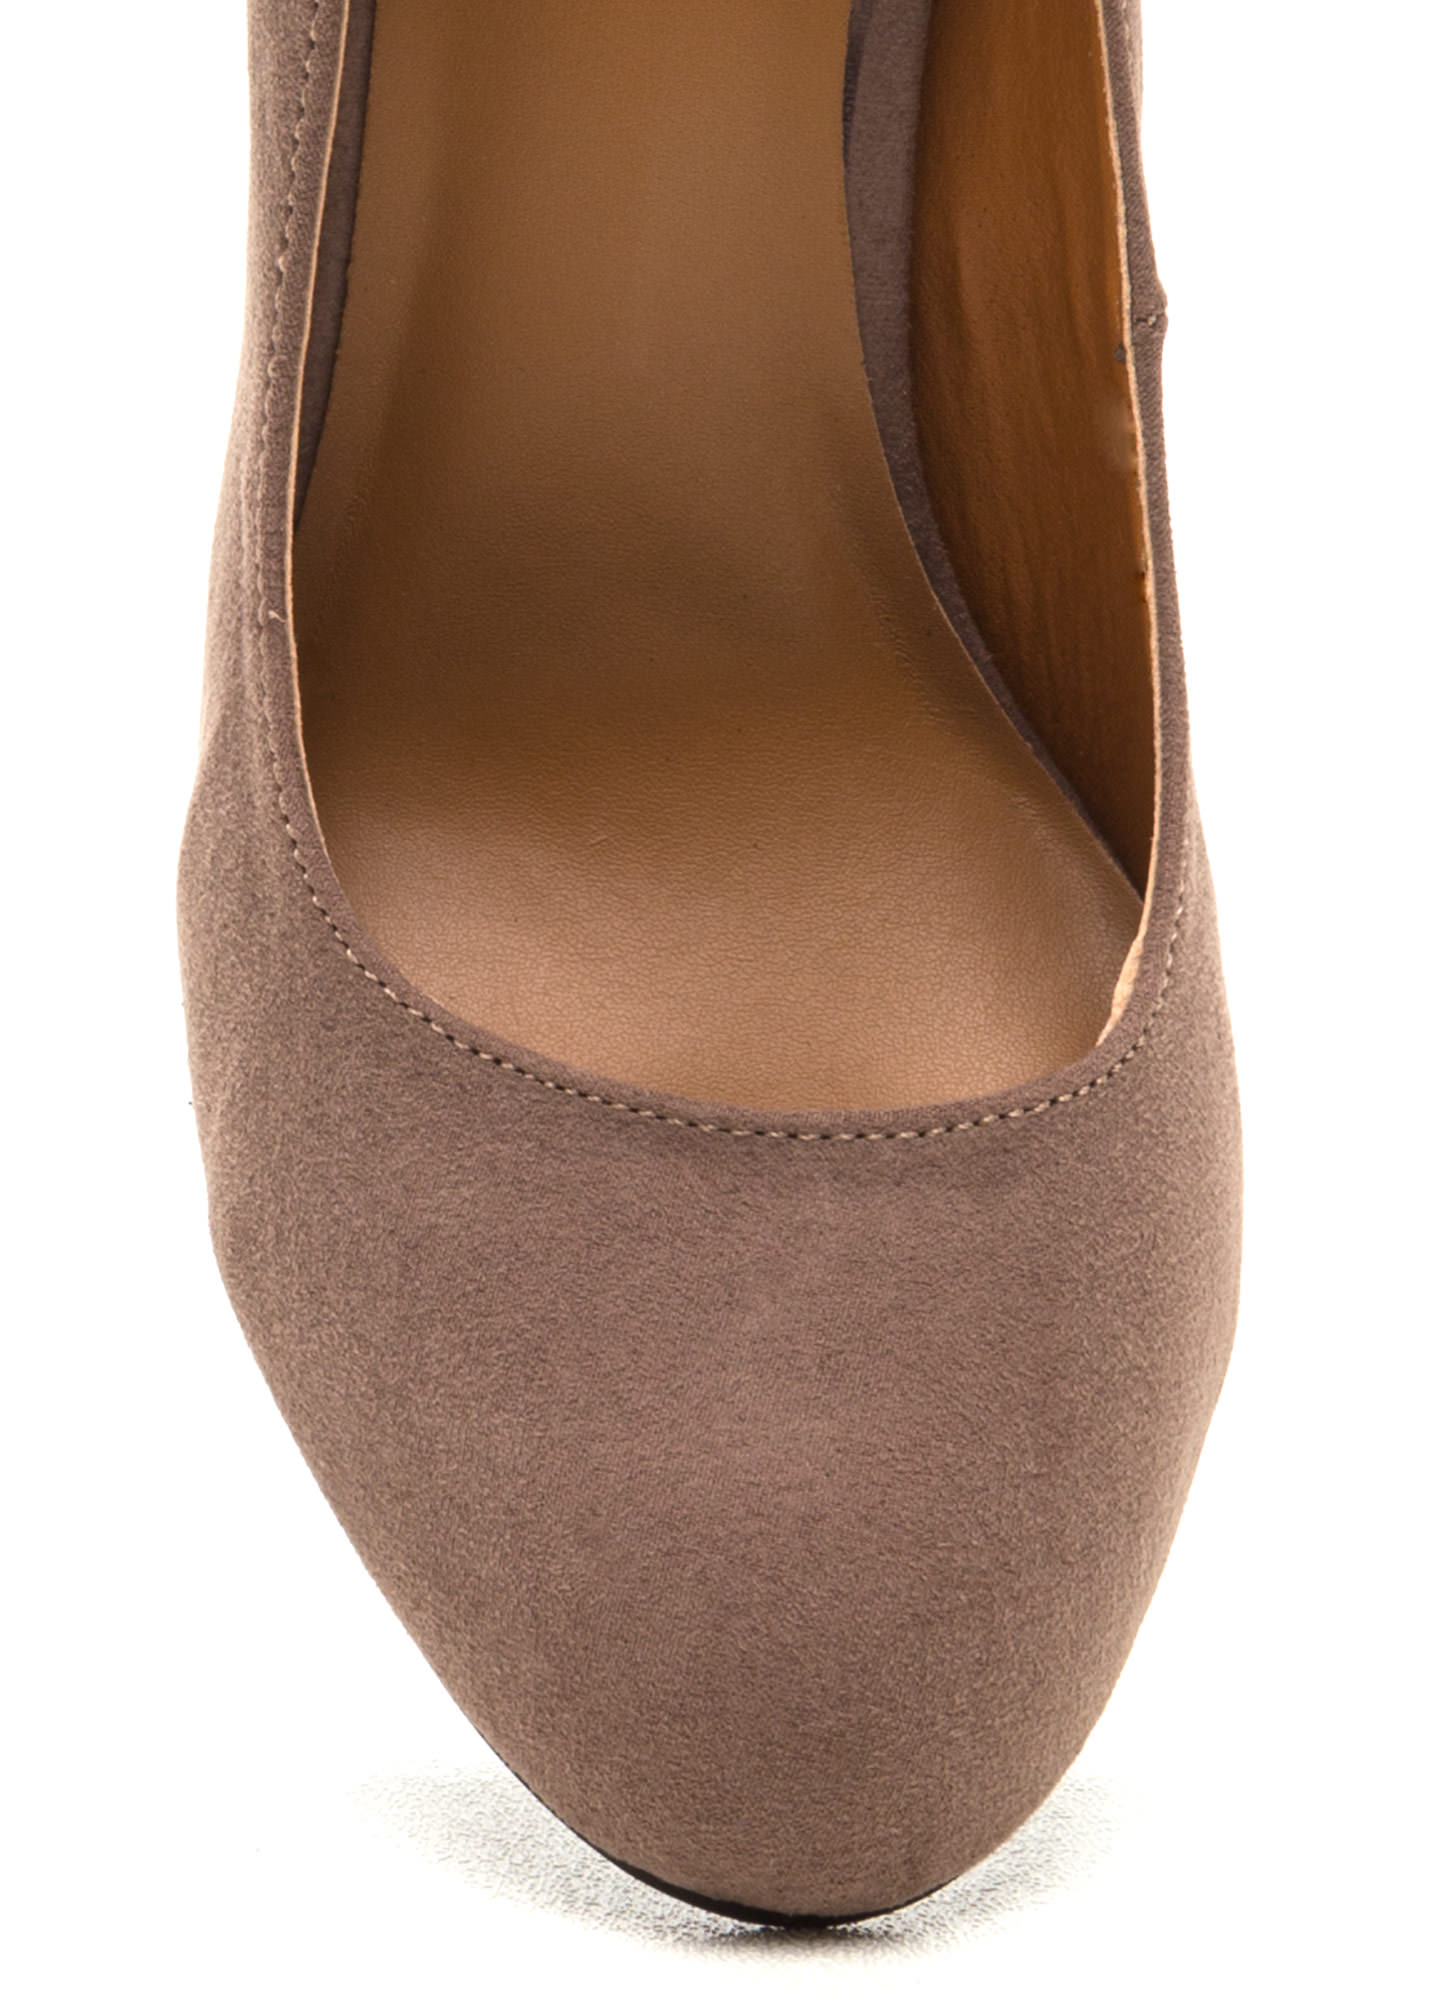 Scene Stealer Faux Suede Pumps TAUPE